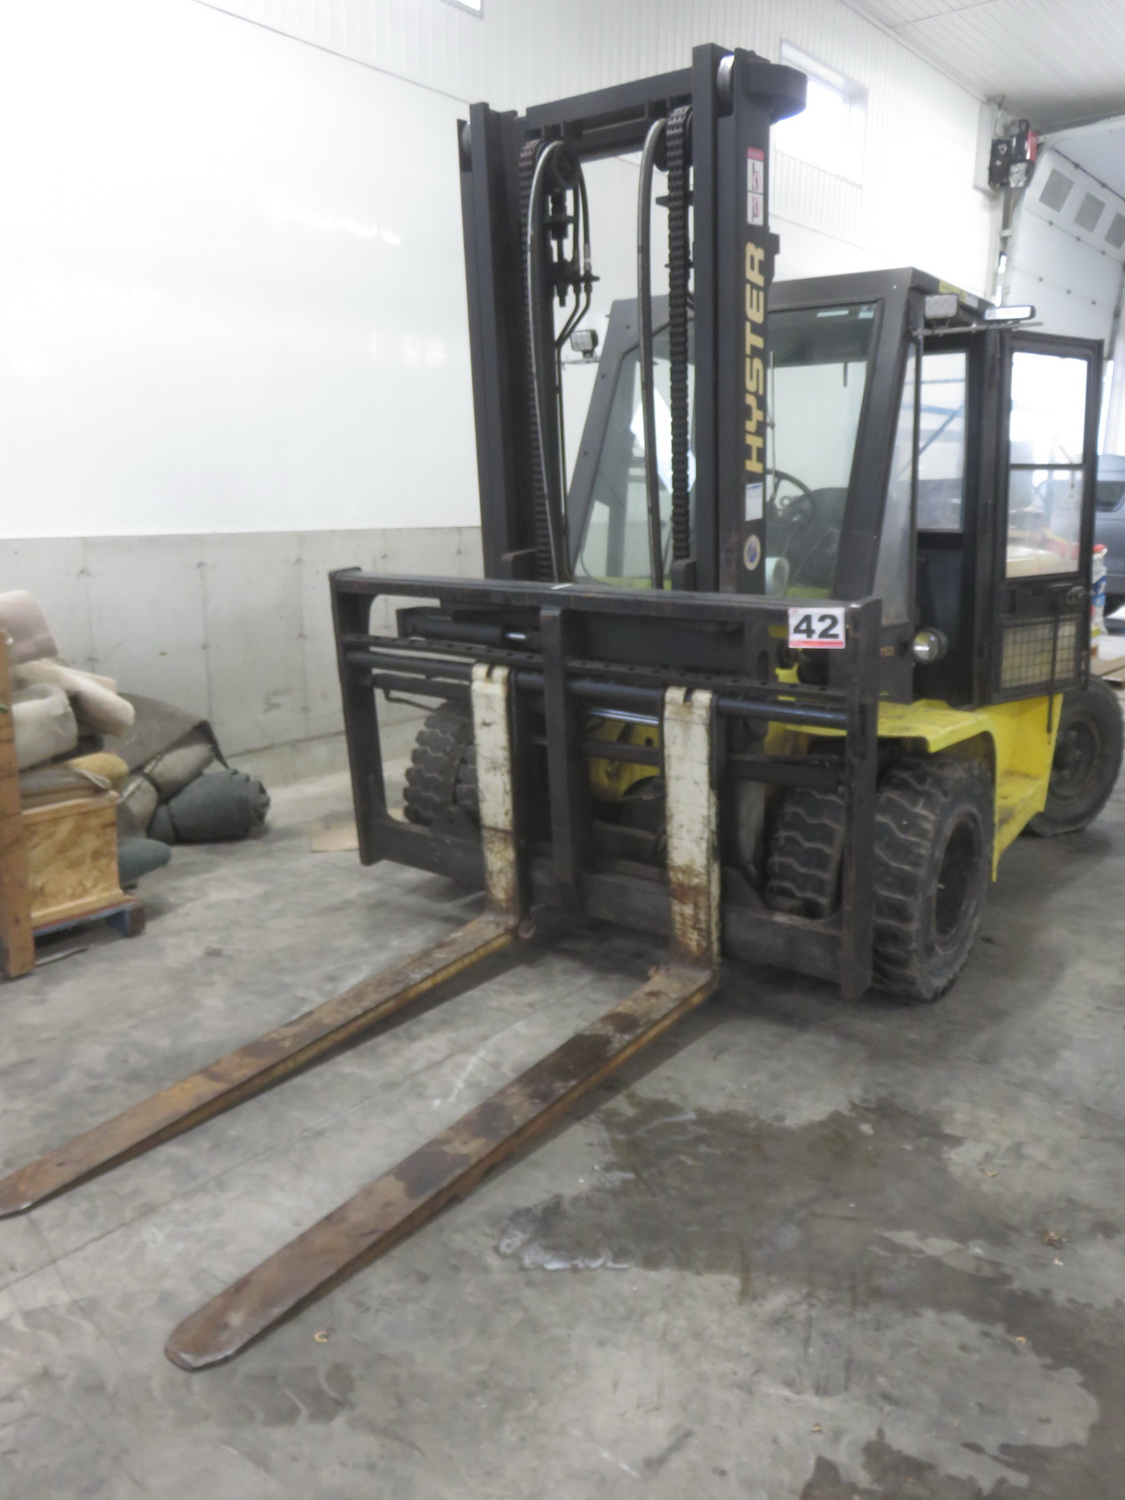 """HYSTER MODEL H155XL PROPANE POWERED ENCLOSED CAB FORKLIFT W/ 14,500LBS CAP., 134"""" LIFT, SIDE SHIFT - Image 5 of 5"""